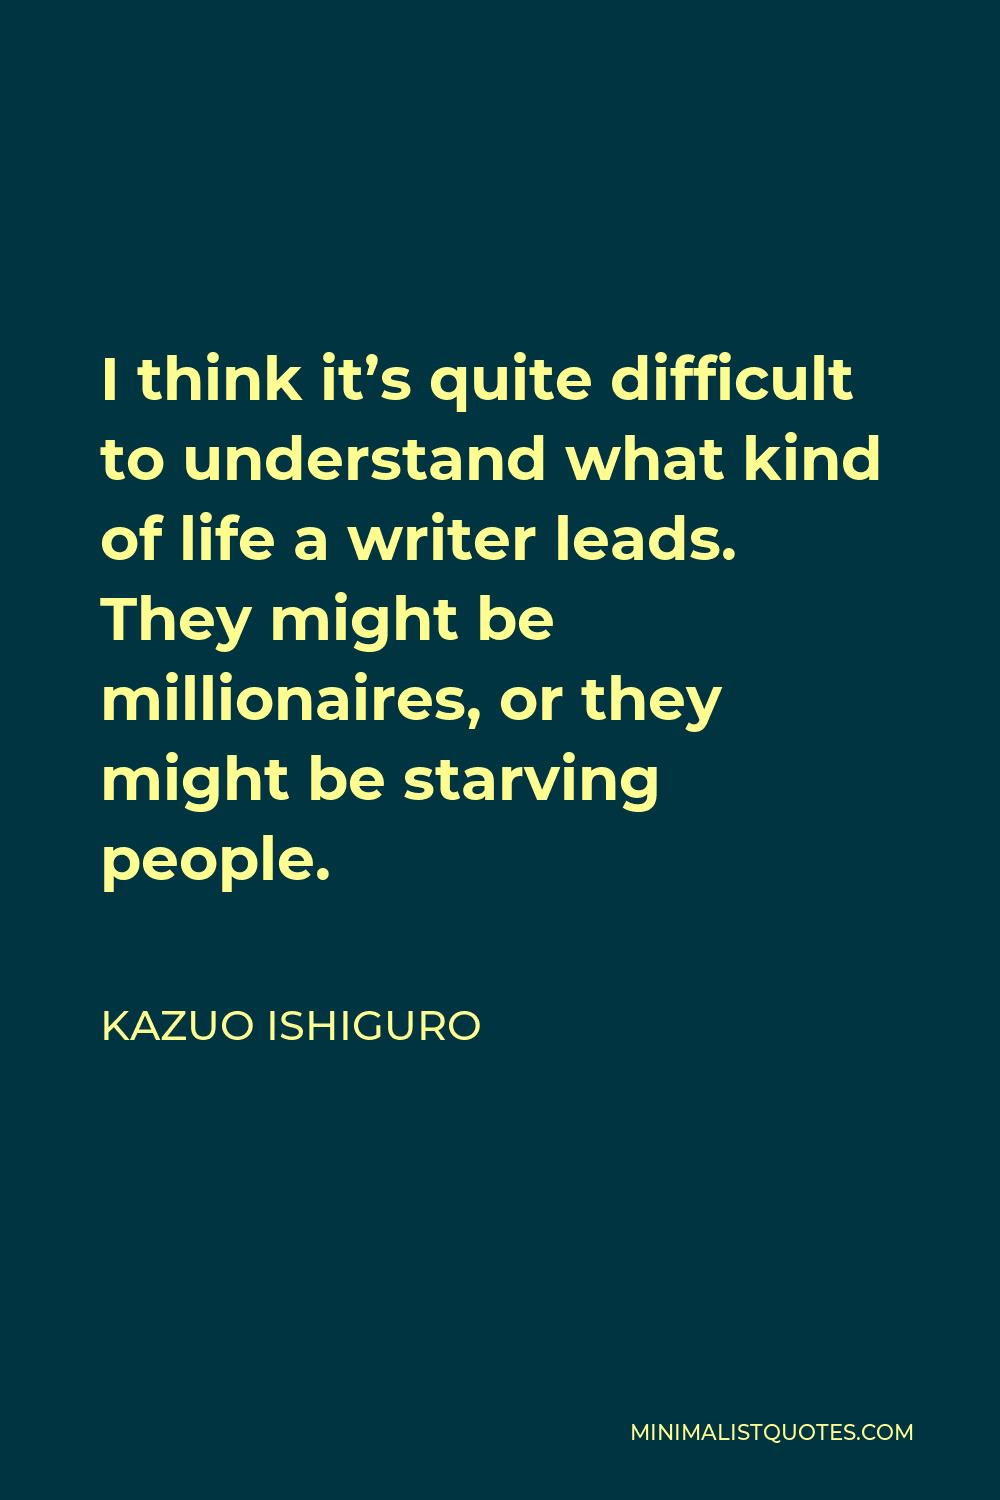 Kazuo Ishiguro Quote - I think it's quite difficult to understand what kind of life a writer leads. They might be millionaires, or they might be starving people.